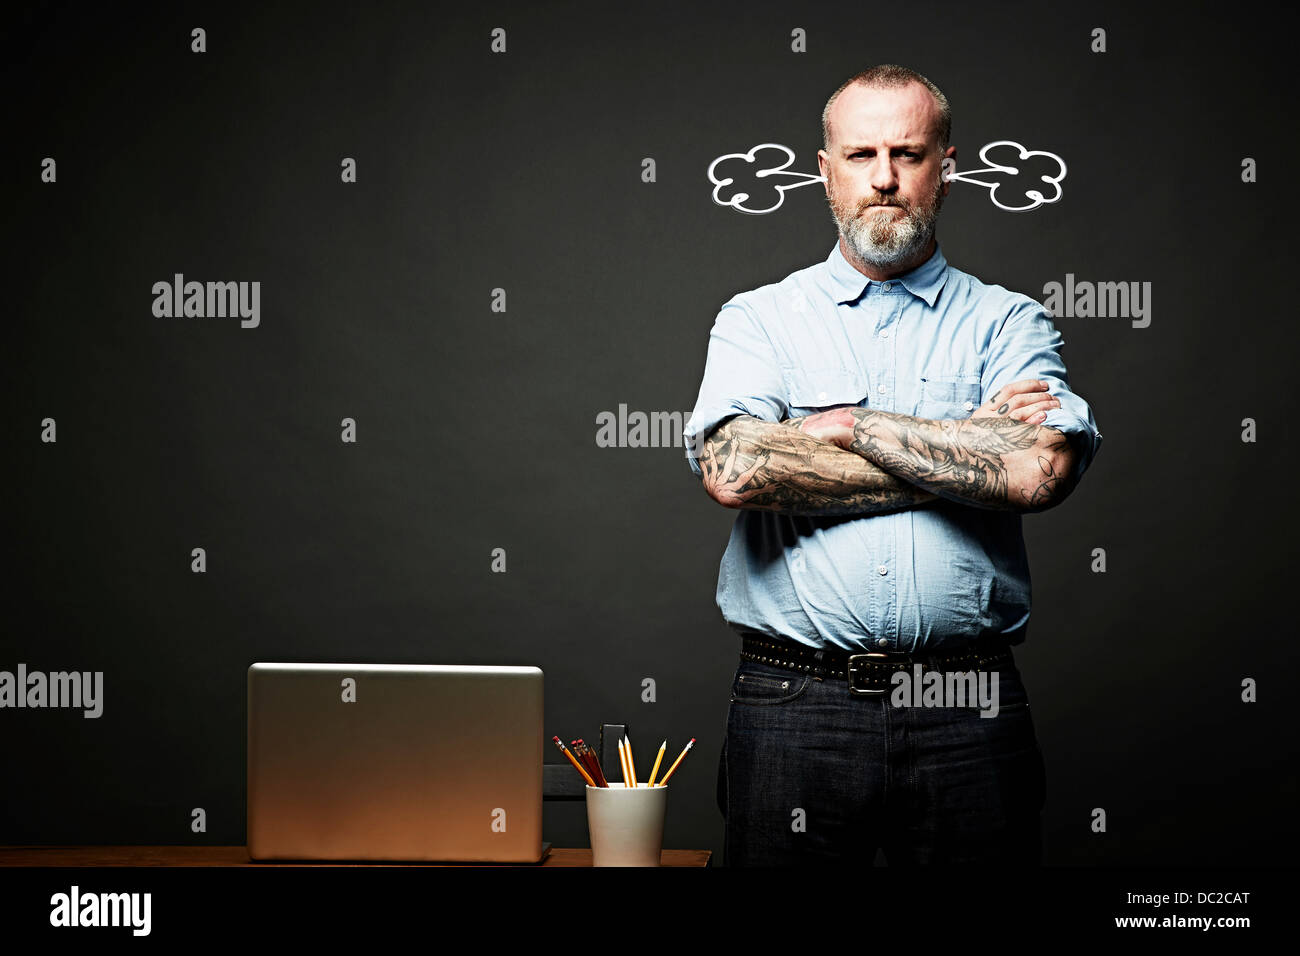 Man with arms crossed fuming in silence - Stock Image